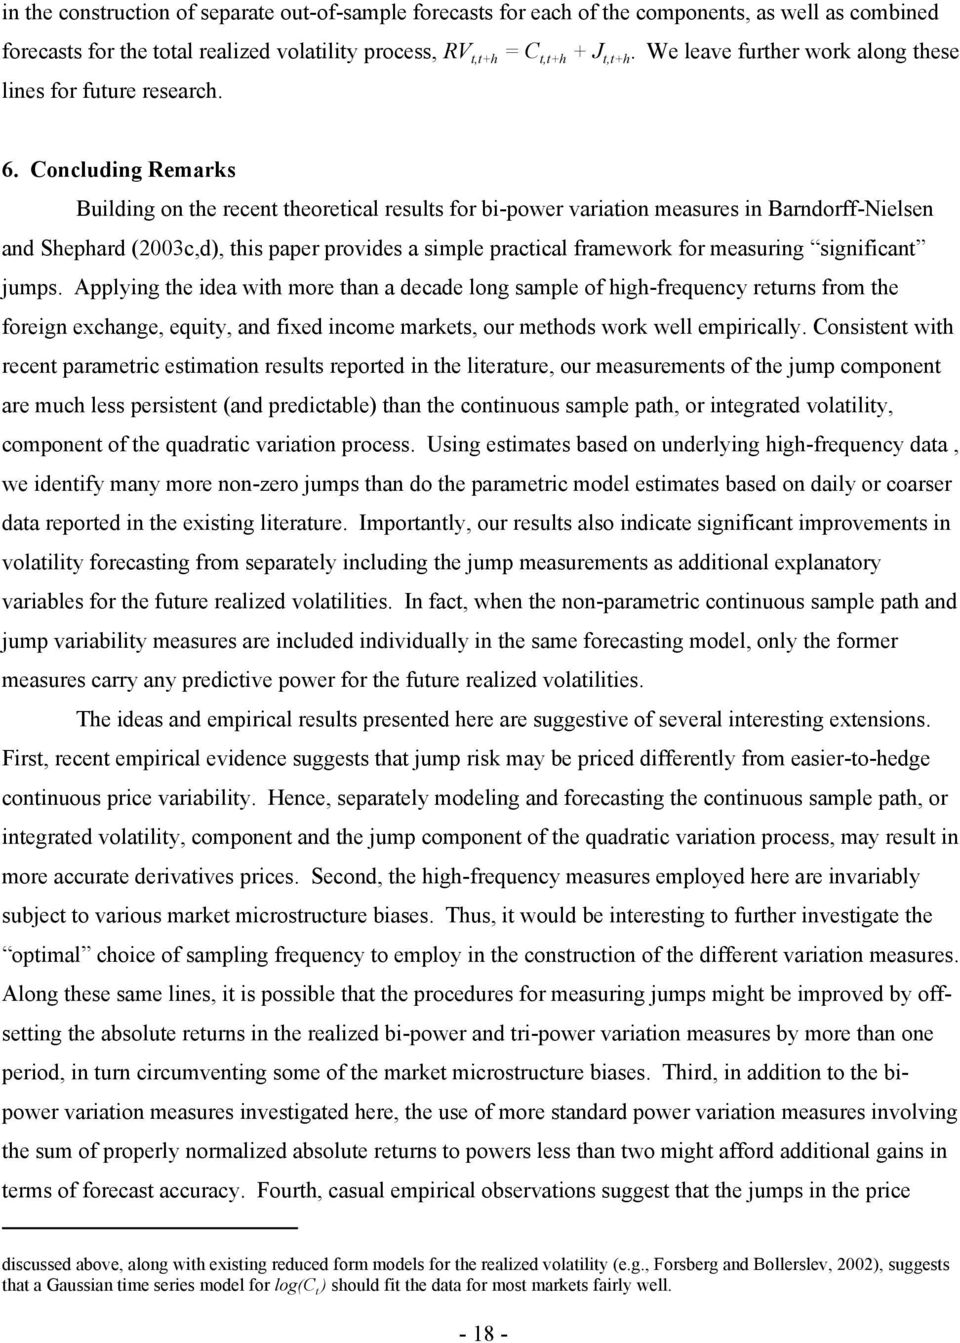 Concluding Remarks Building on the recent theoretical results for bi-power variation measures in Barndorff-Nielsen and Shephard (2003c,d), this paper provides a simple practical framework for